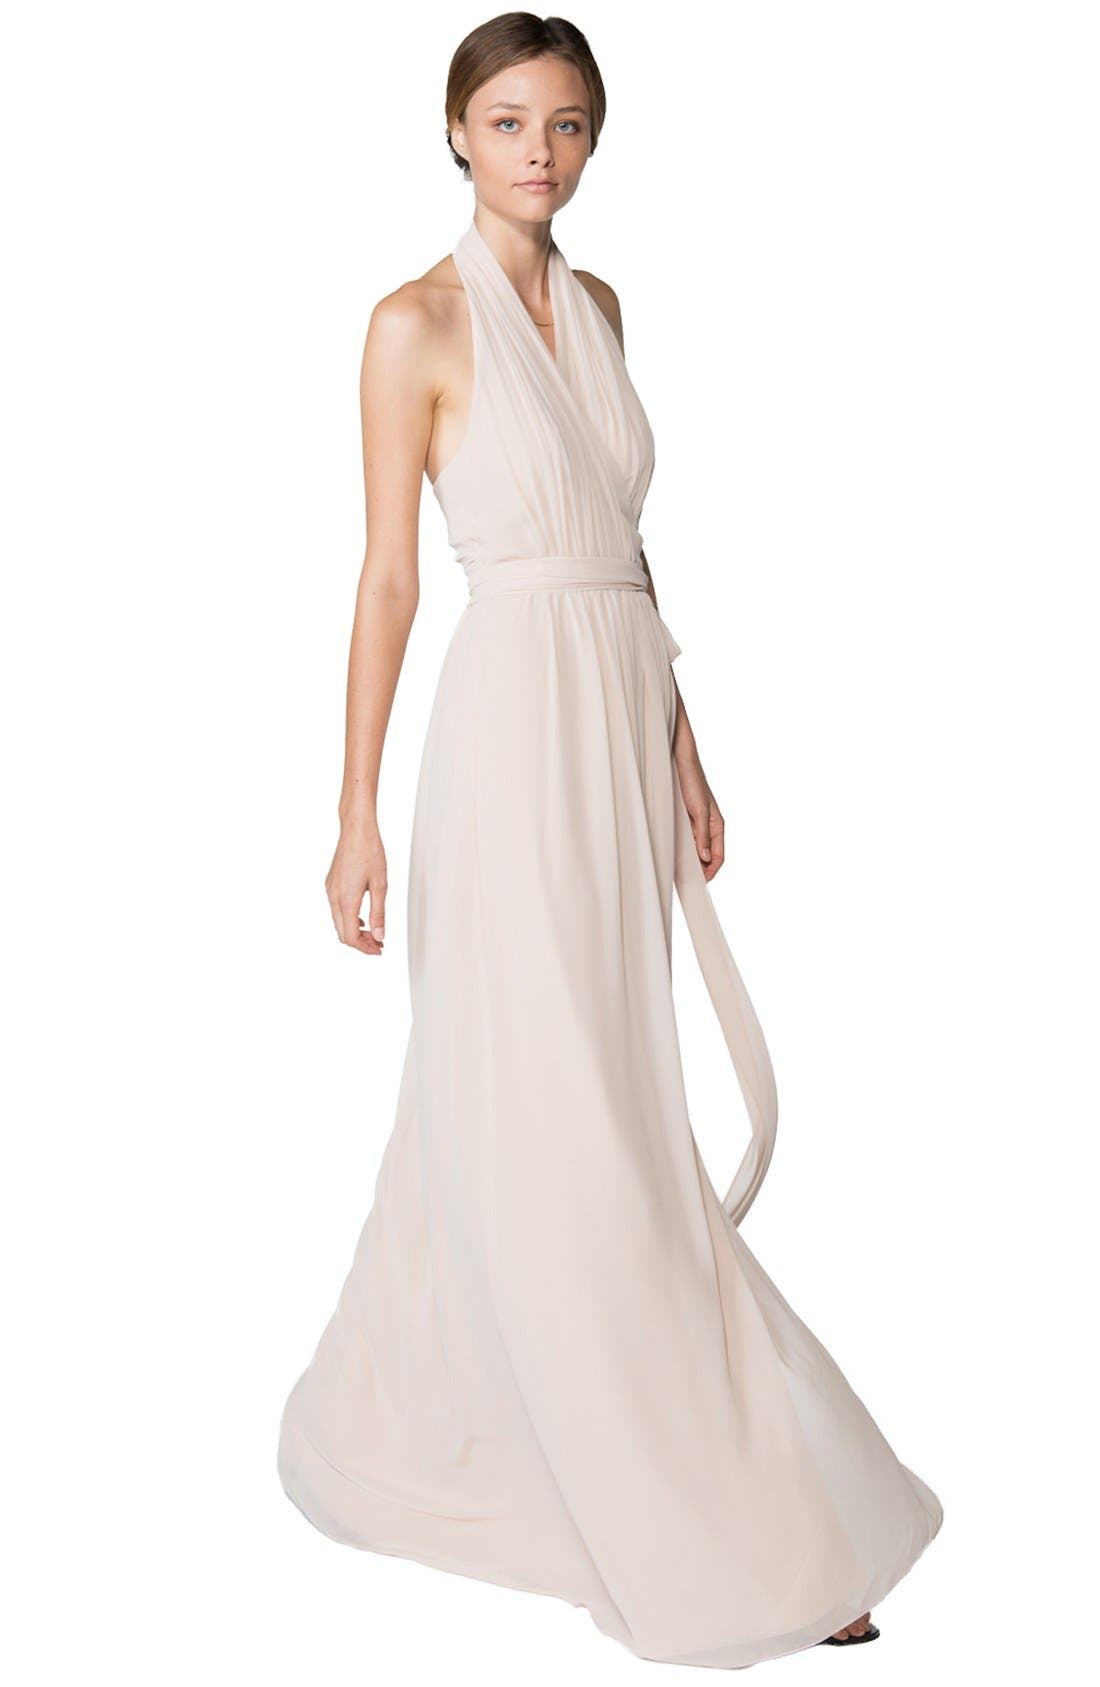 CEREMONY BY JOANNA AUGUST 'Amber' Side Tie Chiffon